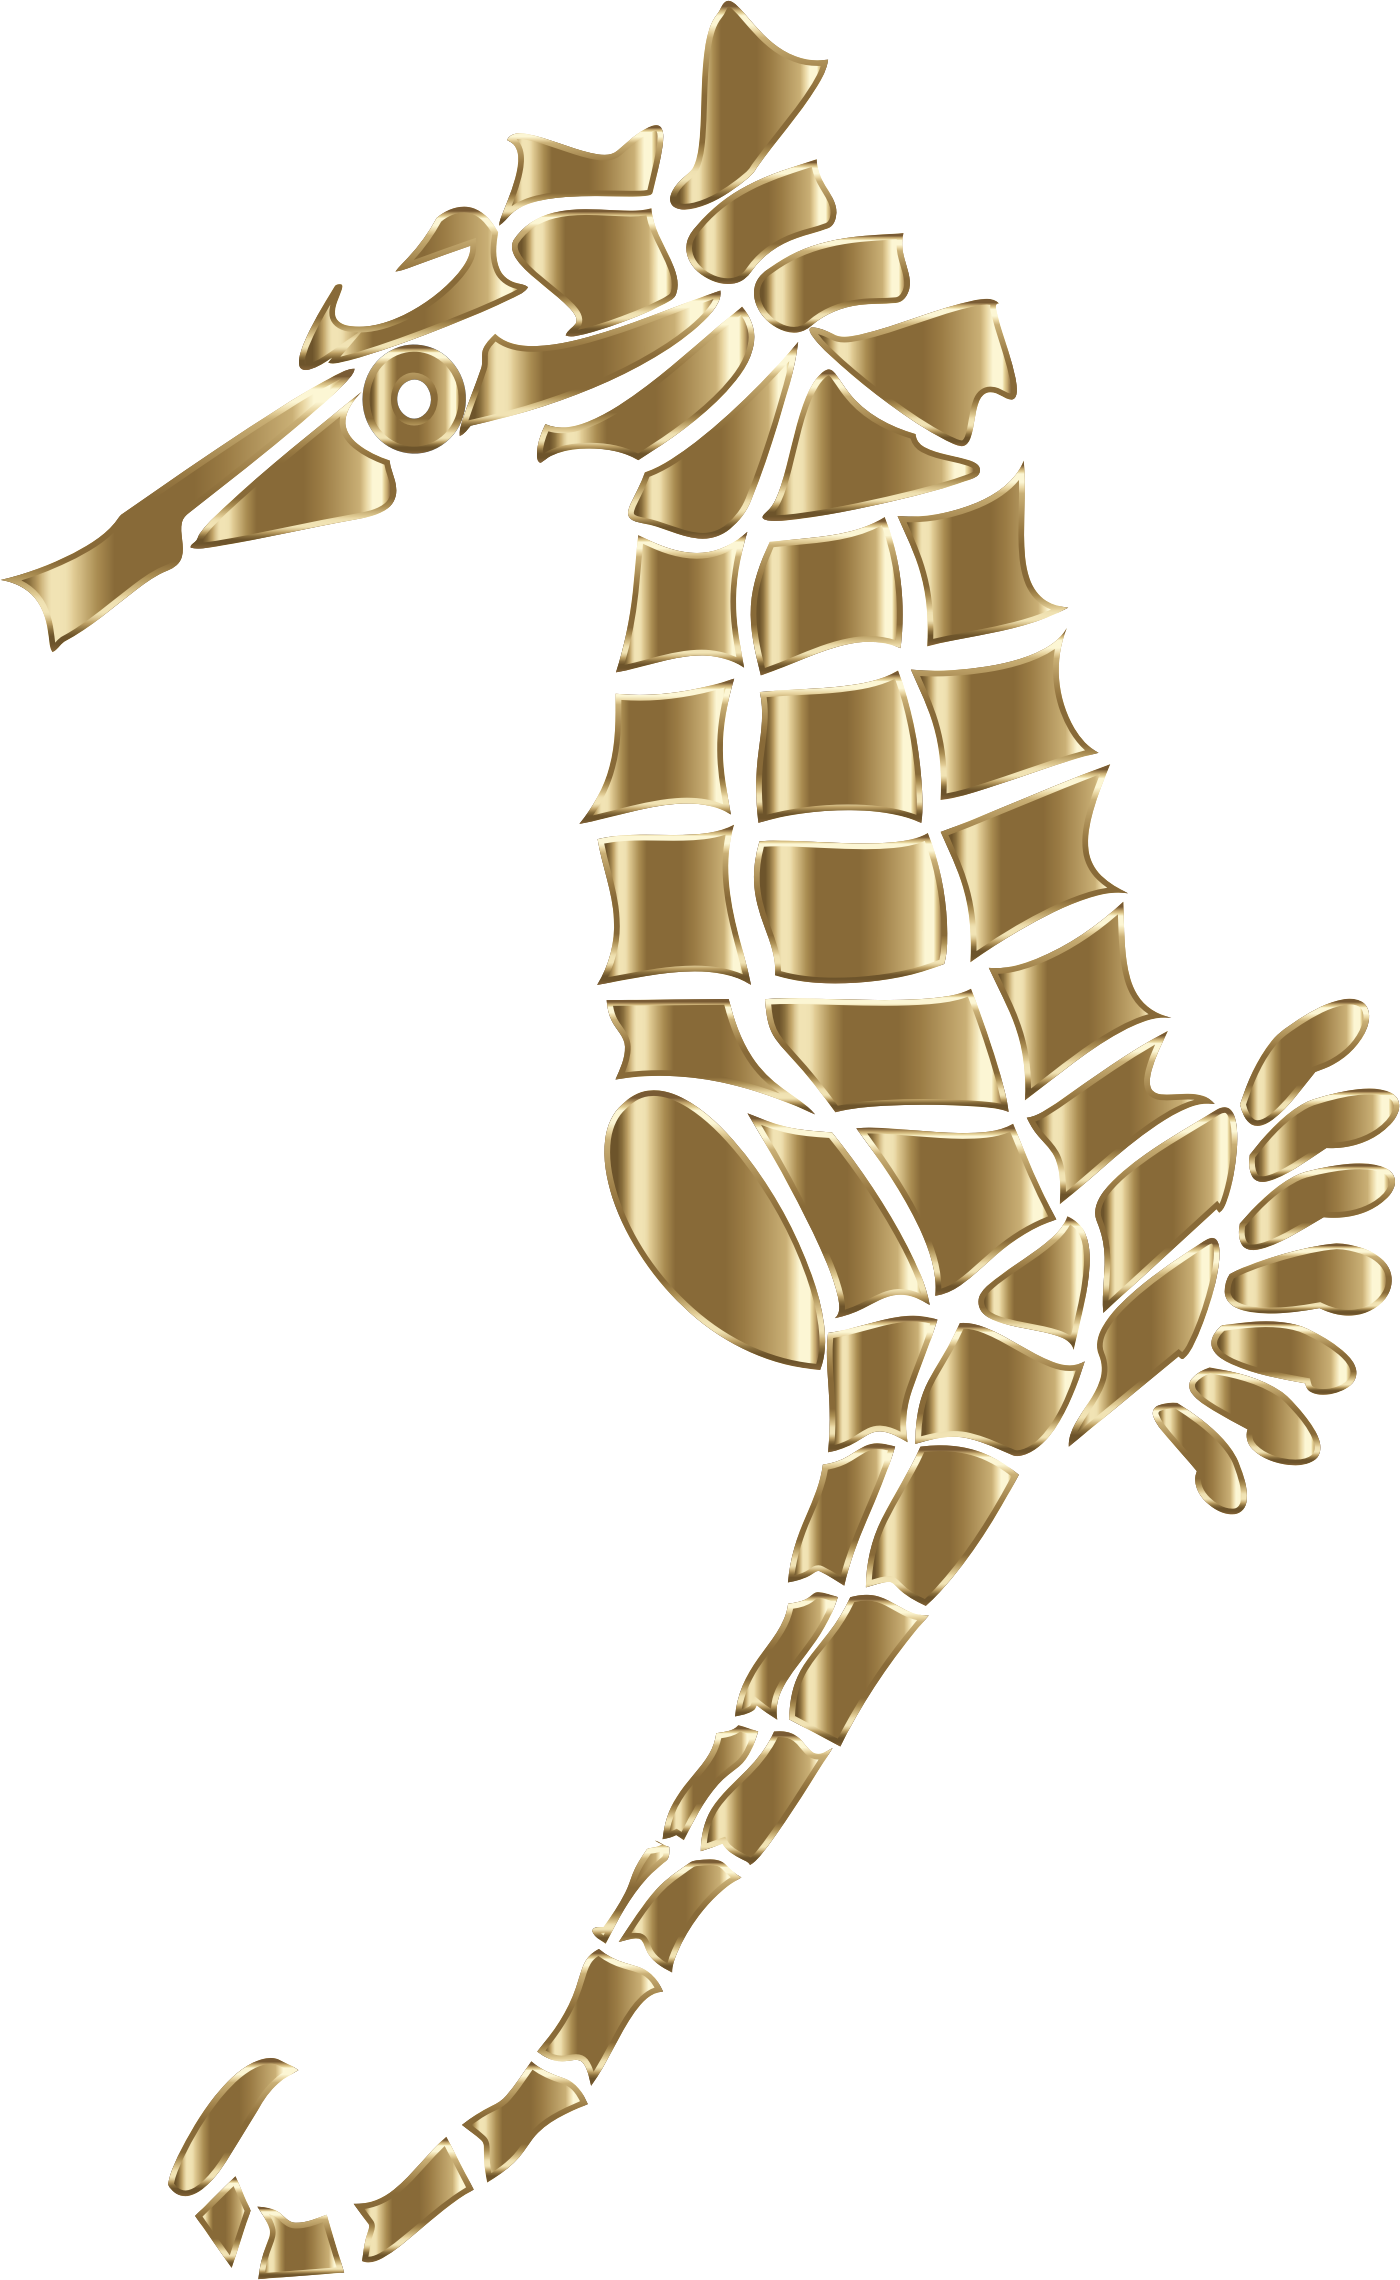 Polished Copper Stylized Seahorse Silhouette No Background by GDJ